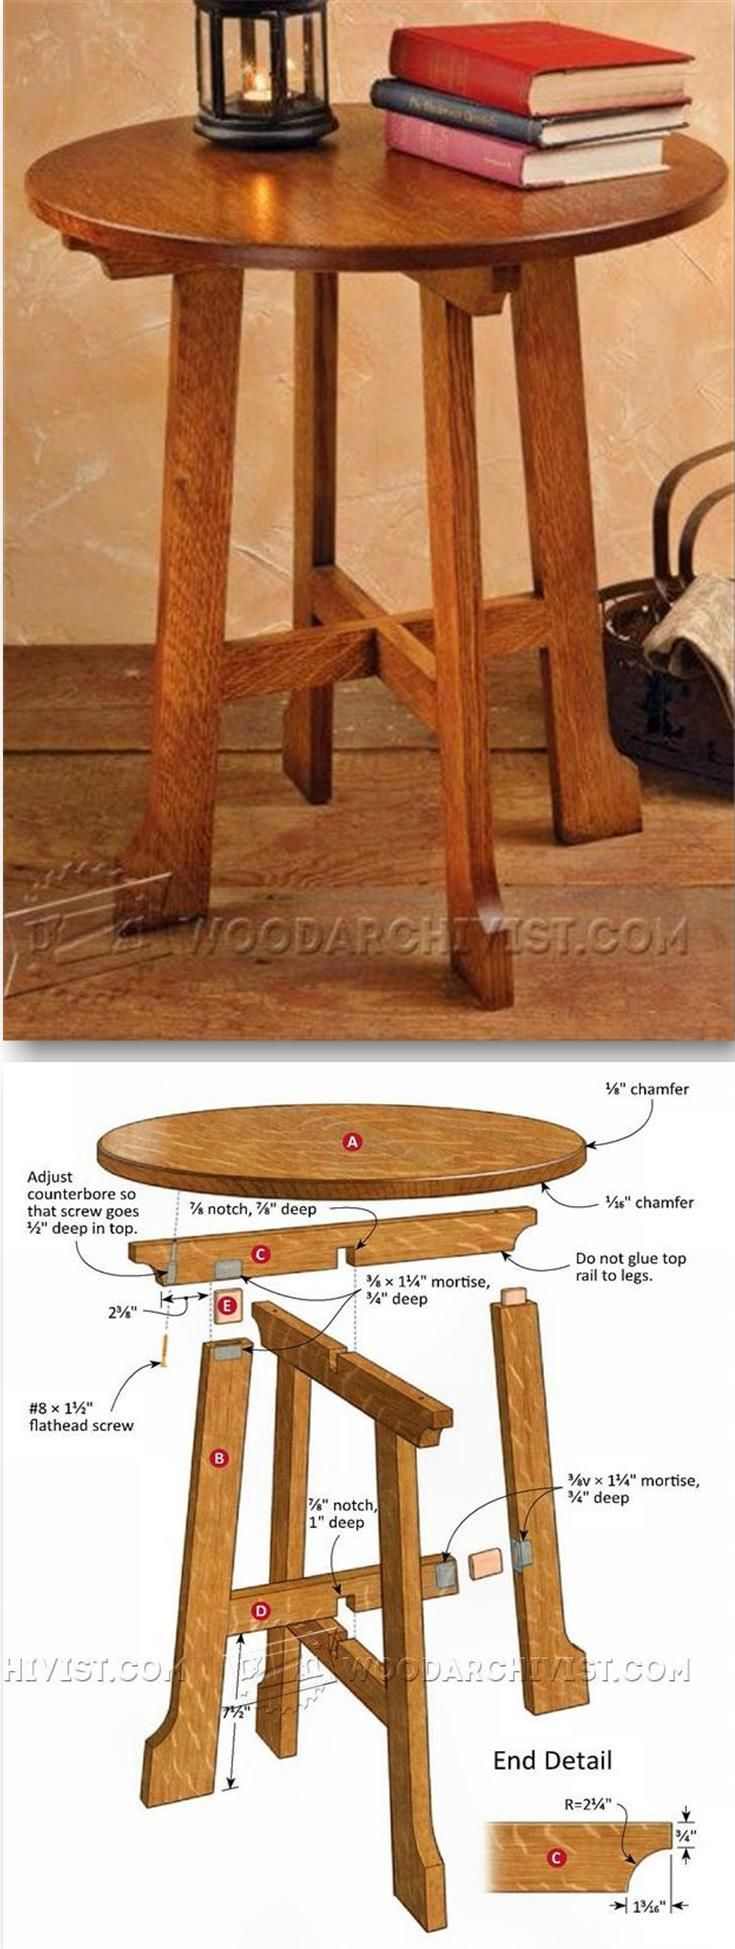 584 Best Mission Craftsman Furniture Images On Pinterest